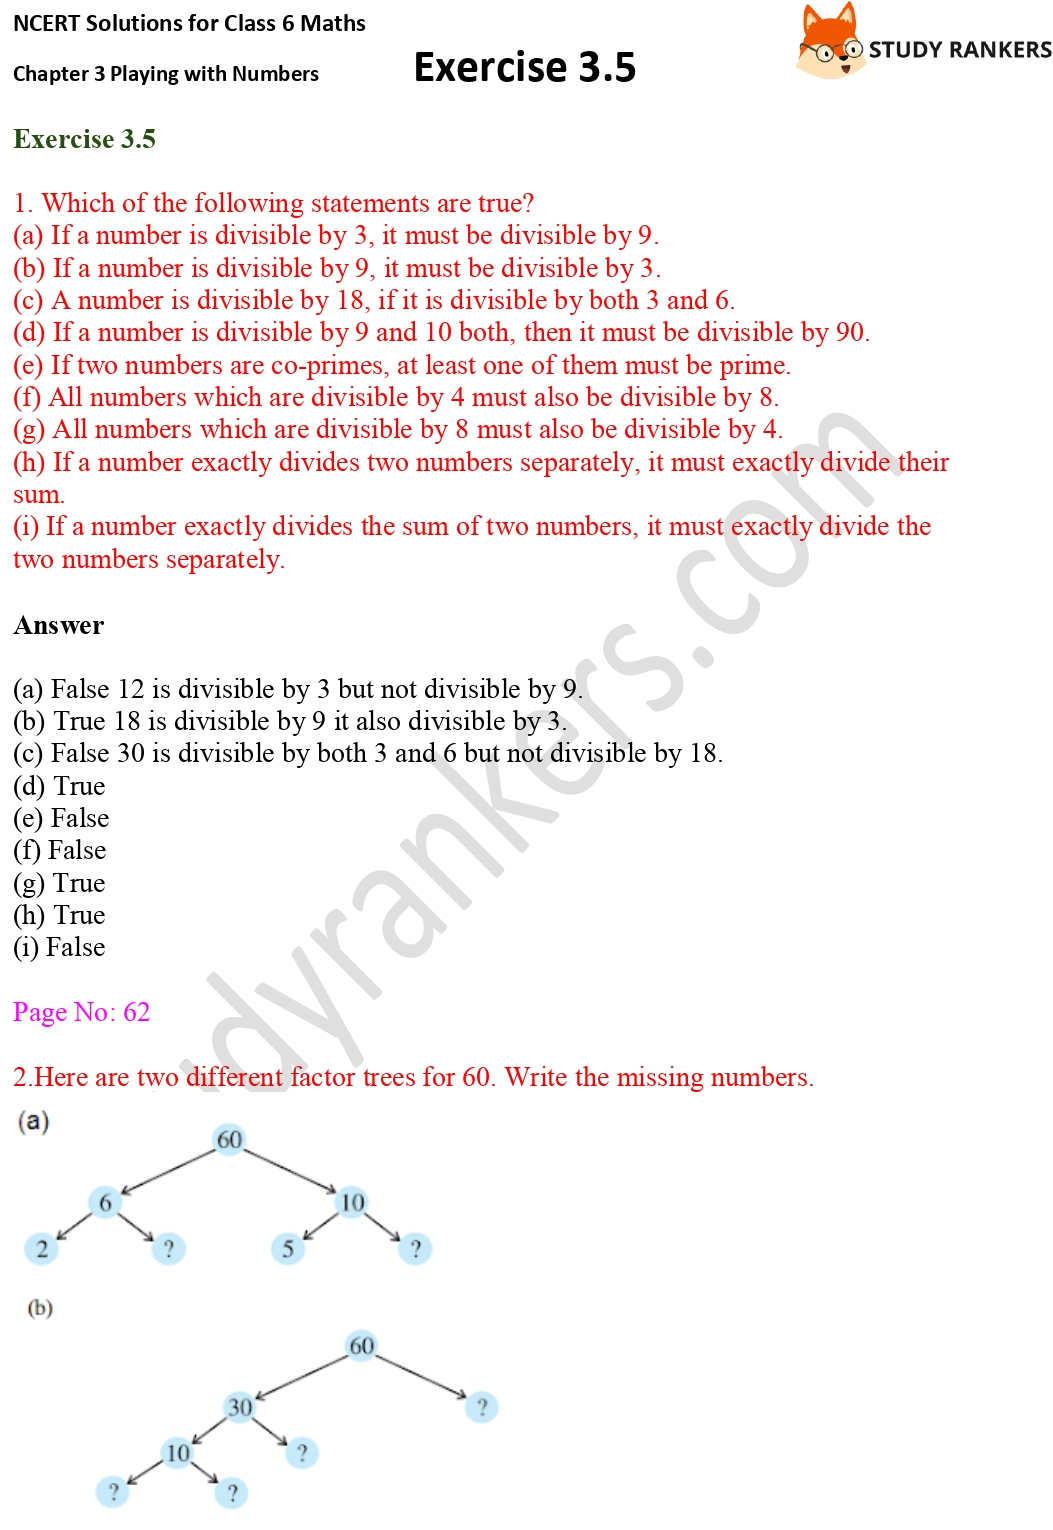 NCERT Solutions for Class 6 Maths Chapter 3 Playing with Numbers Exercise 3.5 Part 1